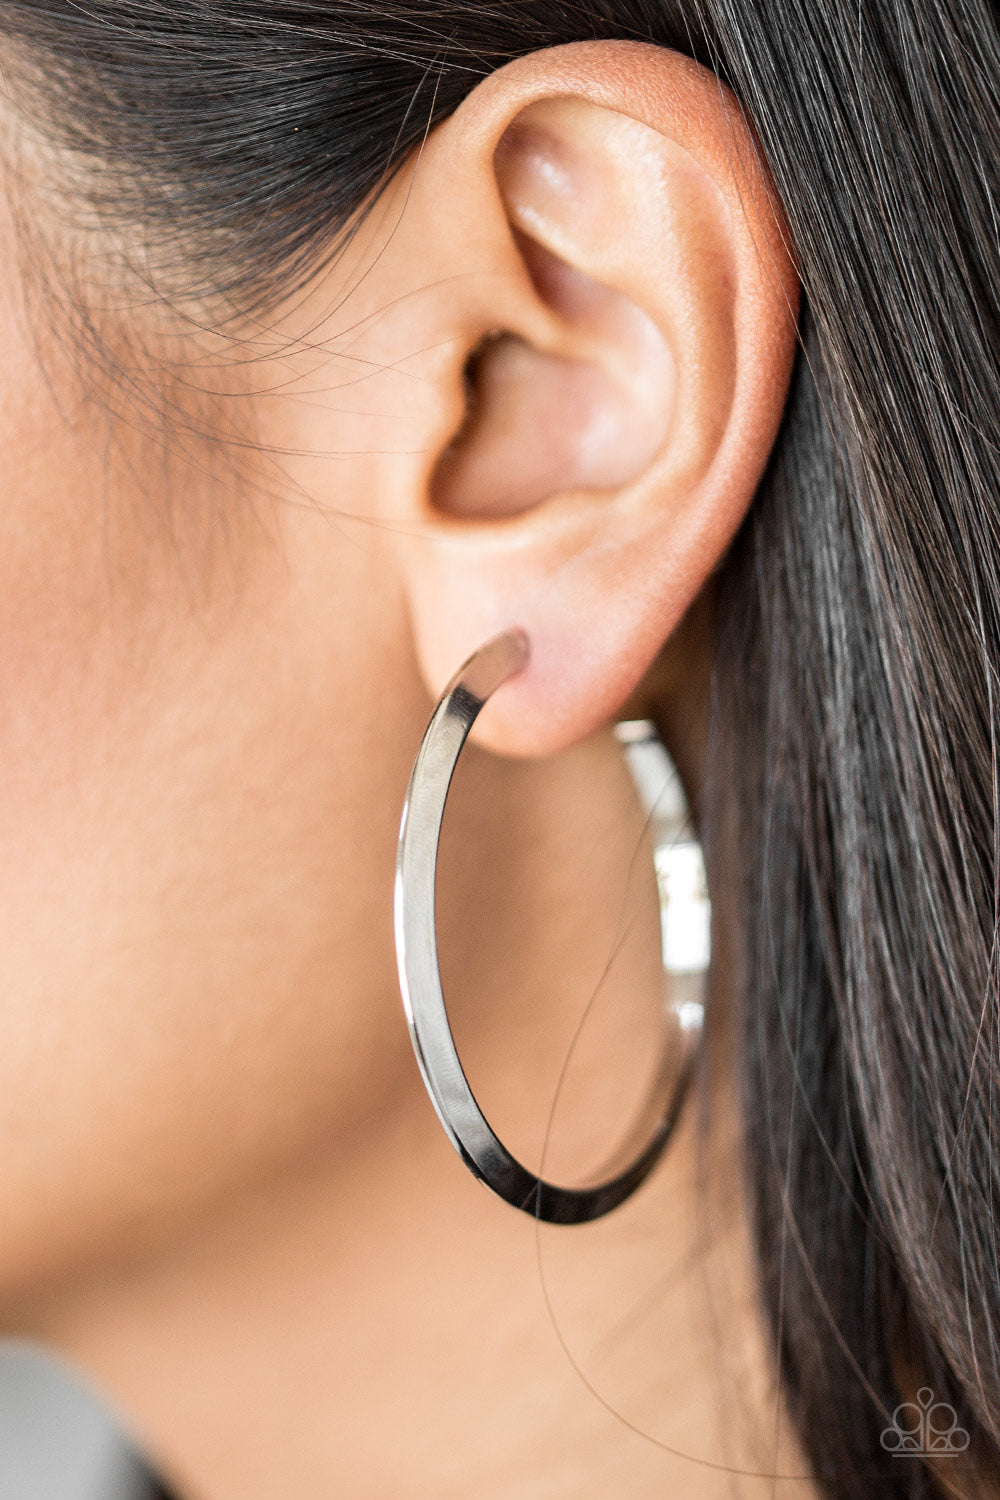 "Brushed in a high-sheen finish, a glistening silver hoop curls into a bold ribbed look for a sassy industrial finish. Earring attaches to a standard post fitting. Hoop measures 1 3/4"" in diameter.  Sold as one pair of hoop earrings.  Always nickel and lead fre"